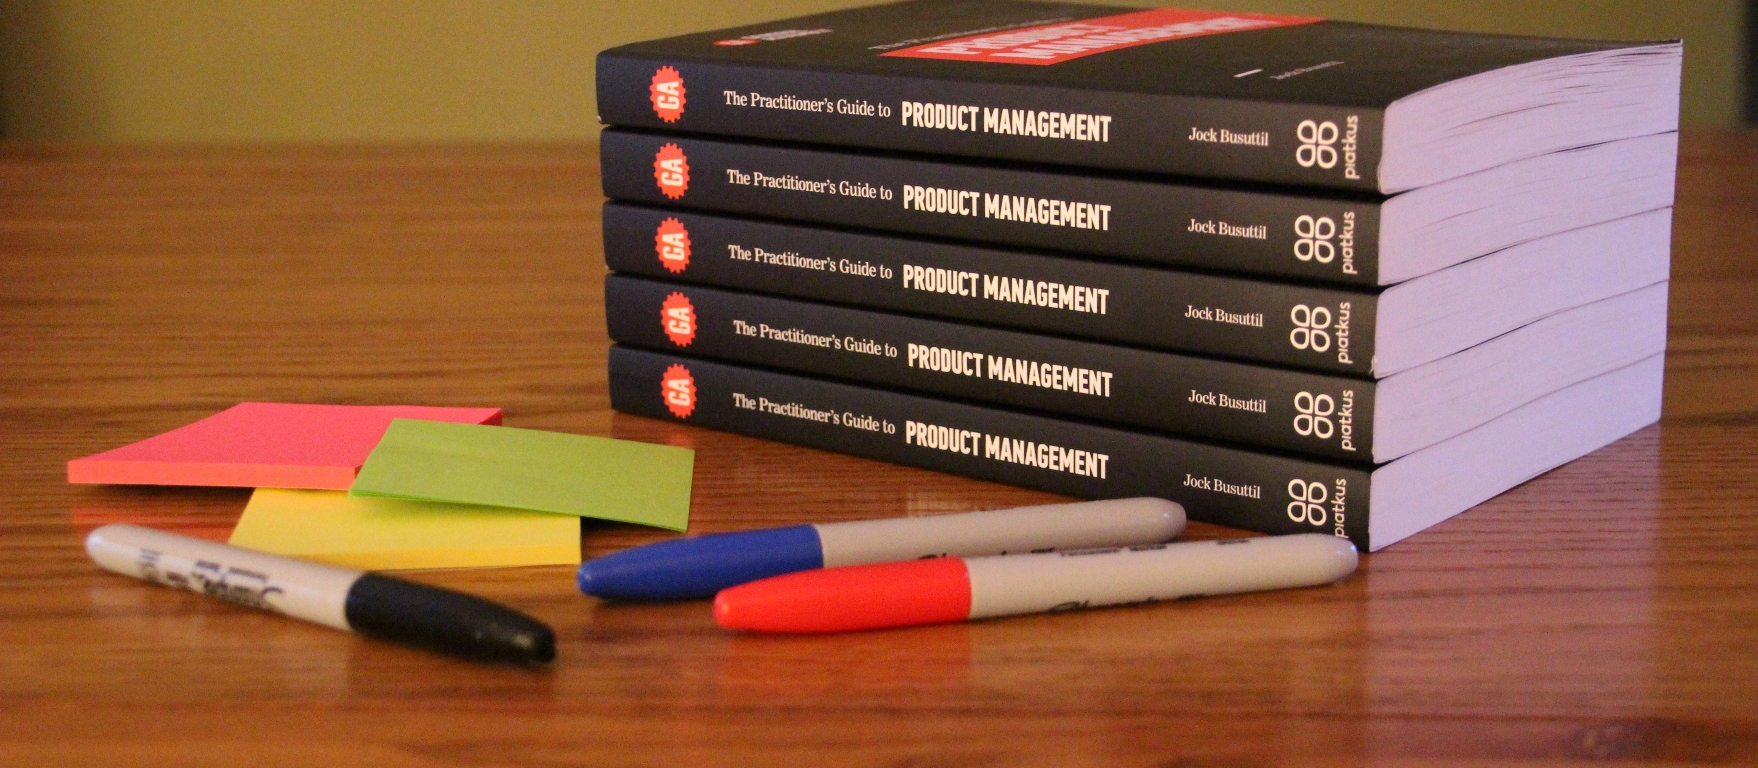 The Practitioner's Guide To Product Management – out tomorrow